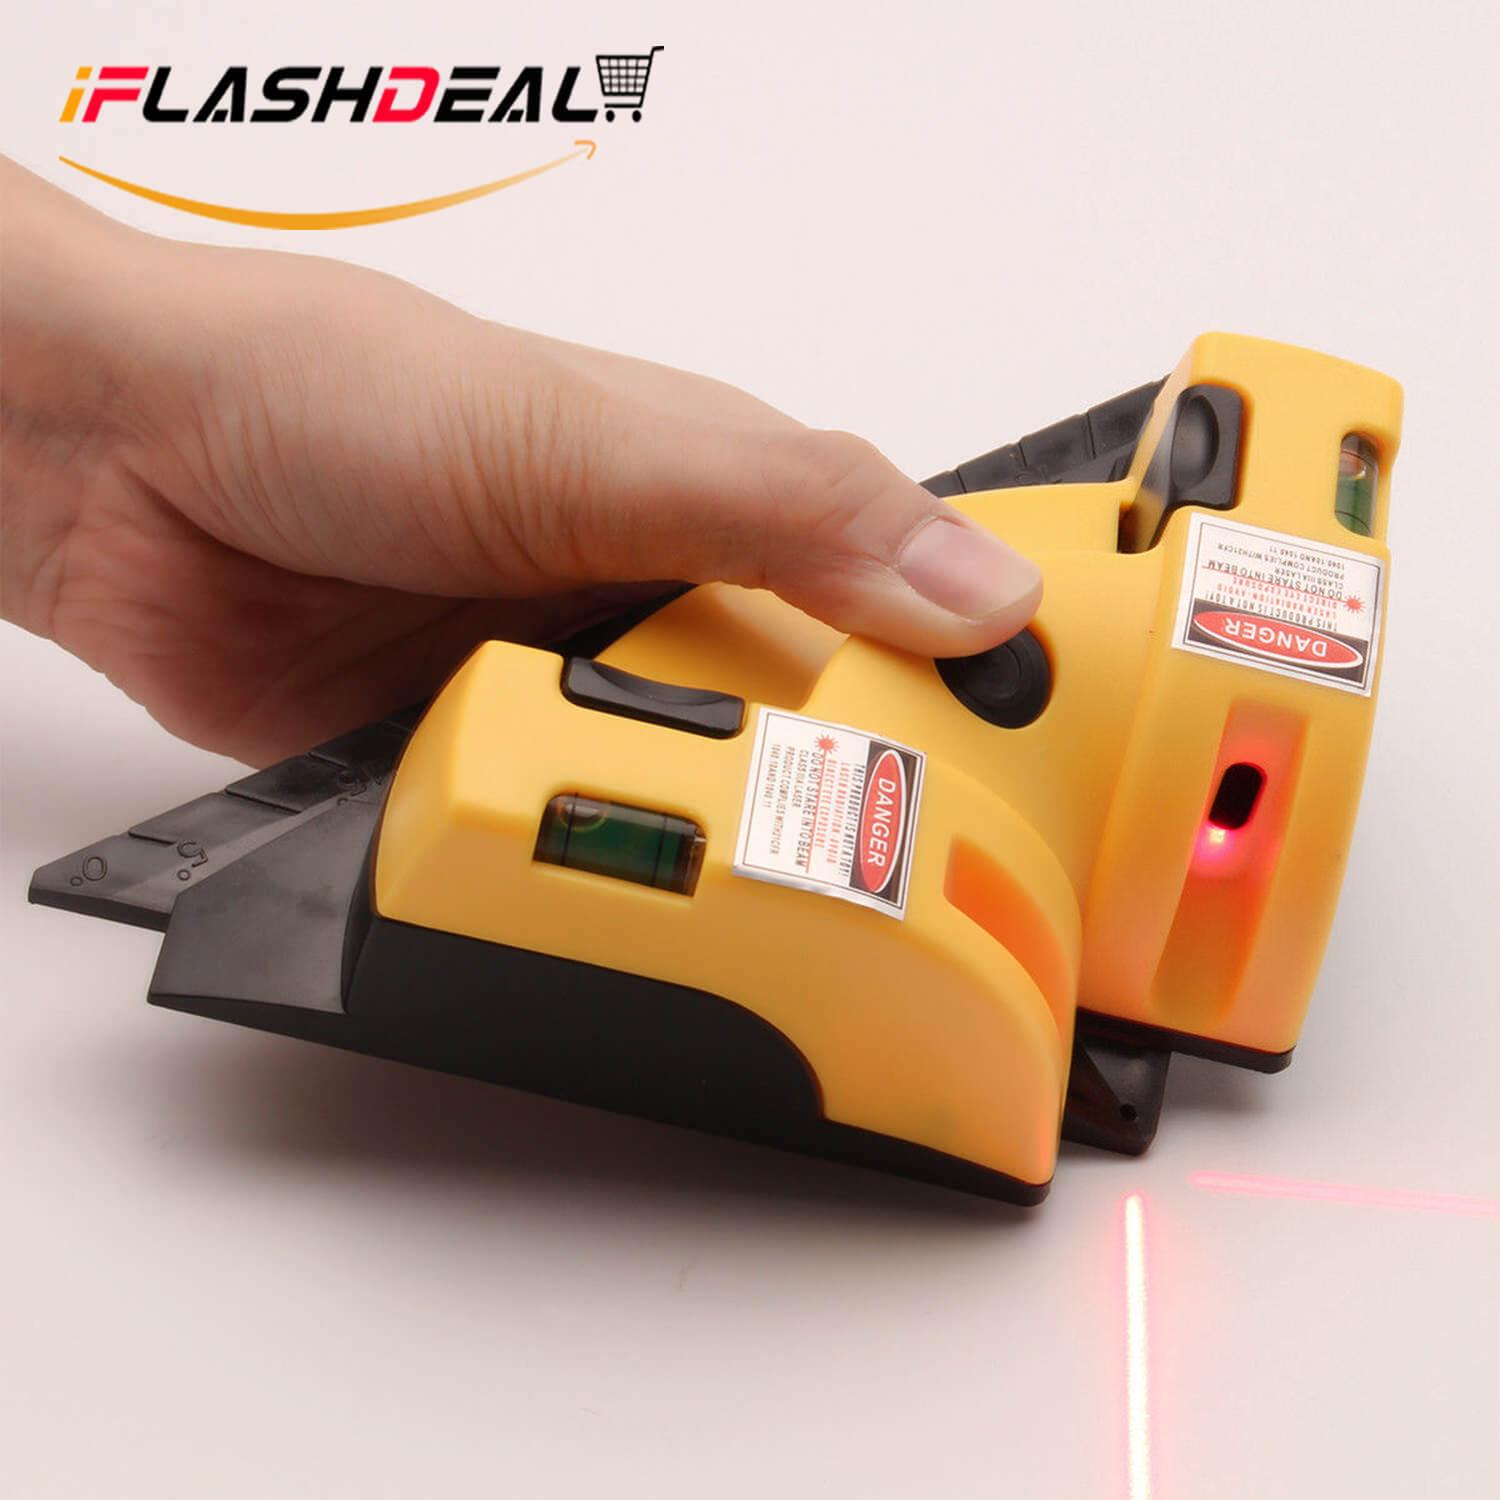 Iflashdeal Vertical Horizontal Laser Level Line Square Right Angle 2 Line Laser Leveling 90 Degree By Iflashdeal.